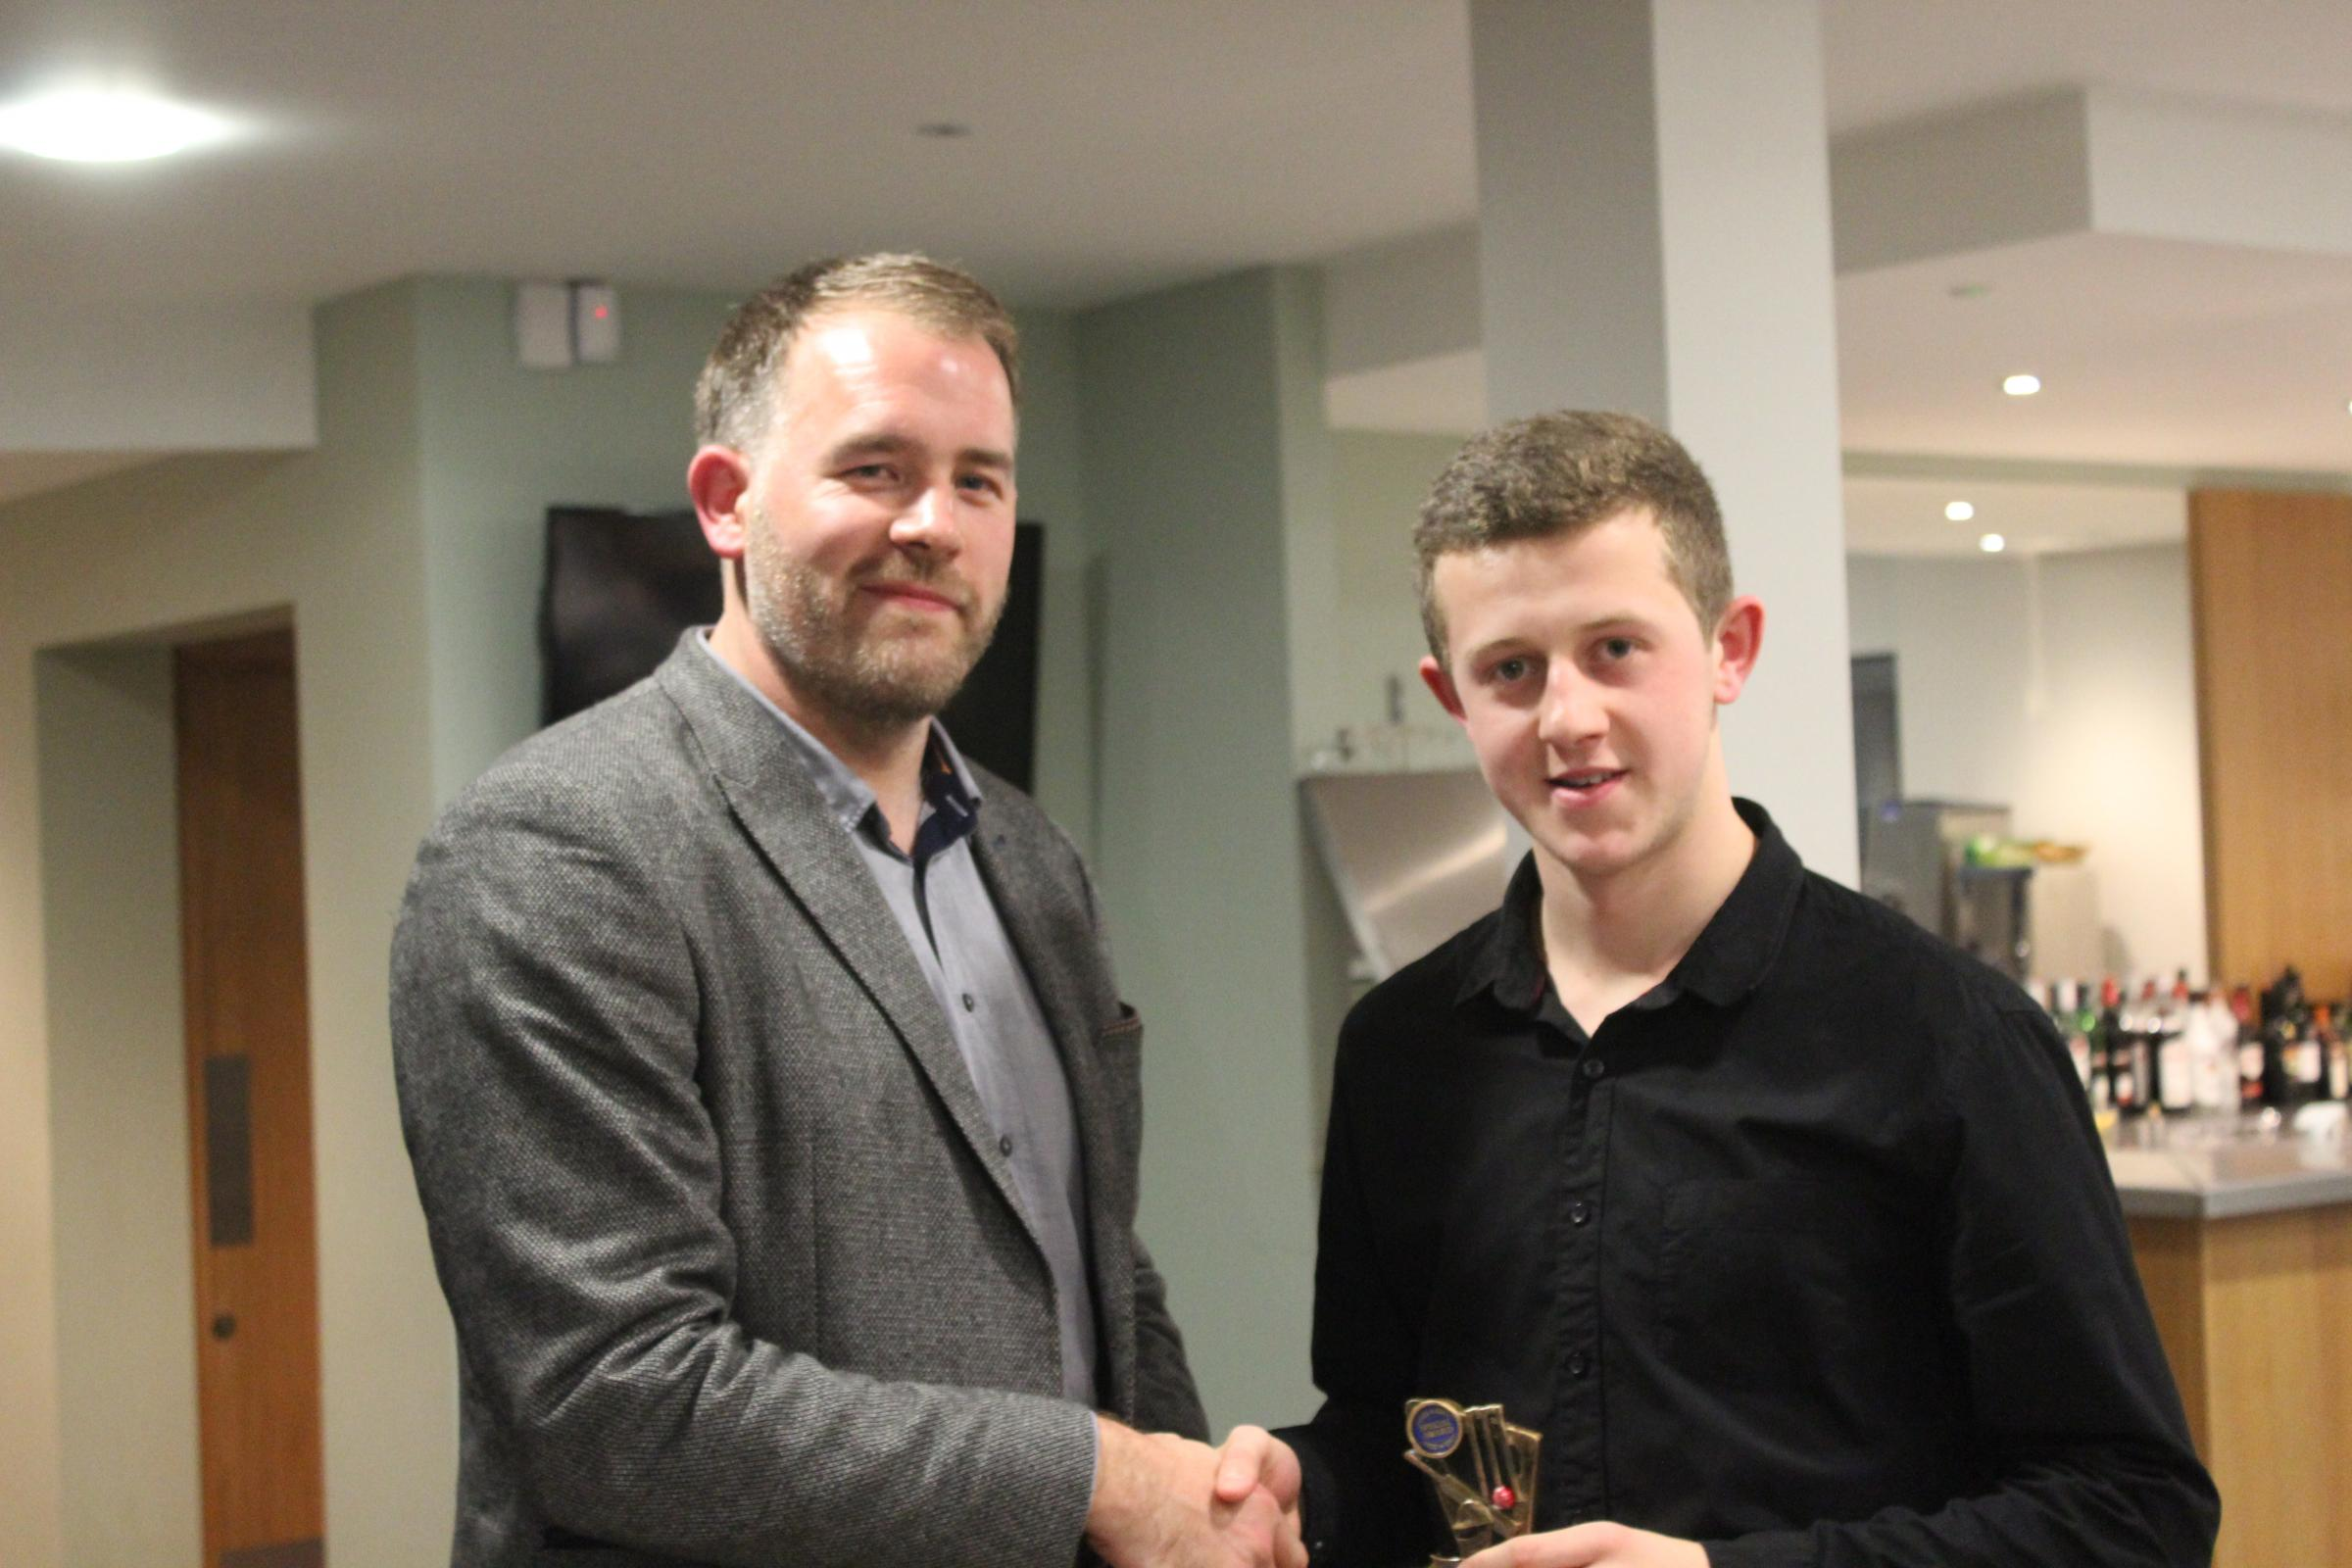 Teenage cricketer Alex Basford secures Martley treble (From Worcester News)